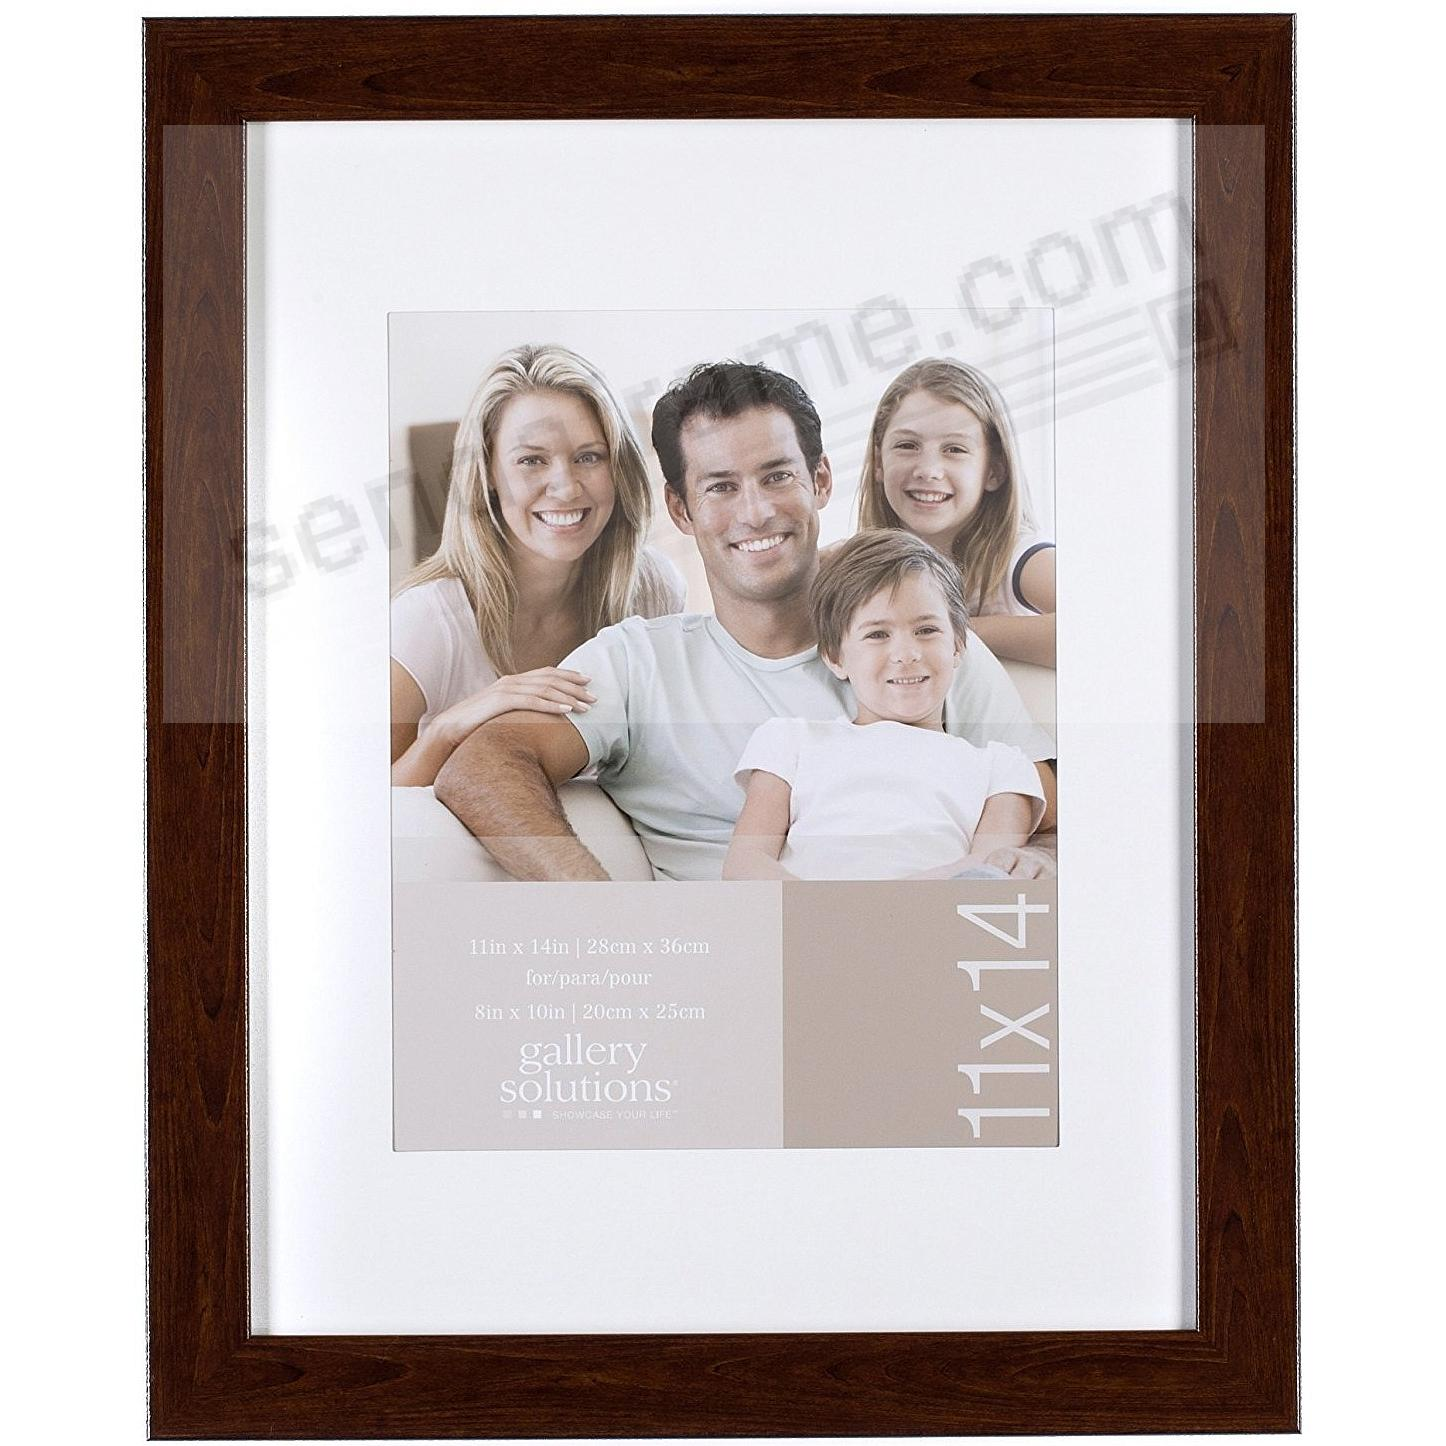 Brown-Ashwood 11x14/8x10 matted frame by Gallery Solutions™